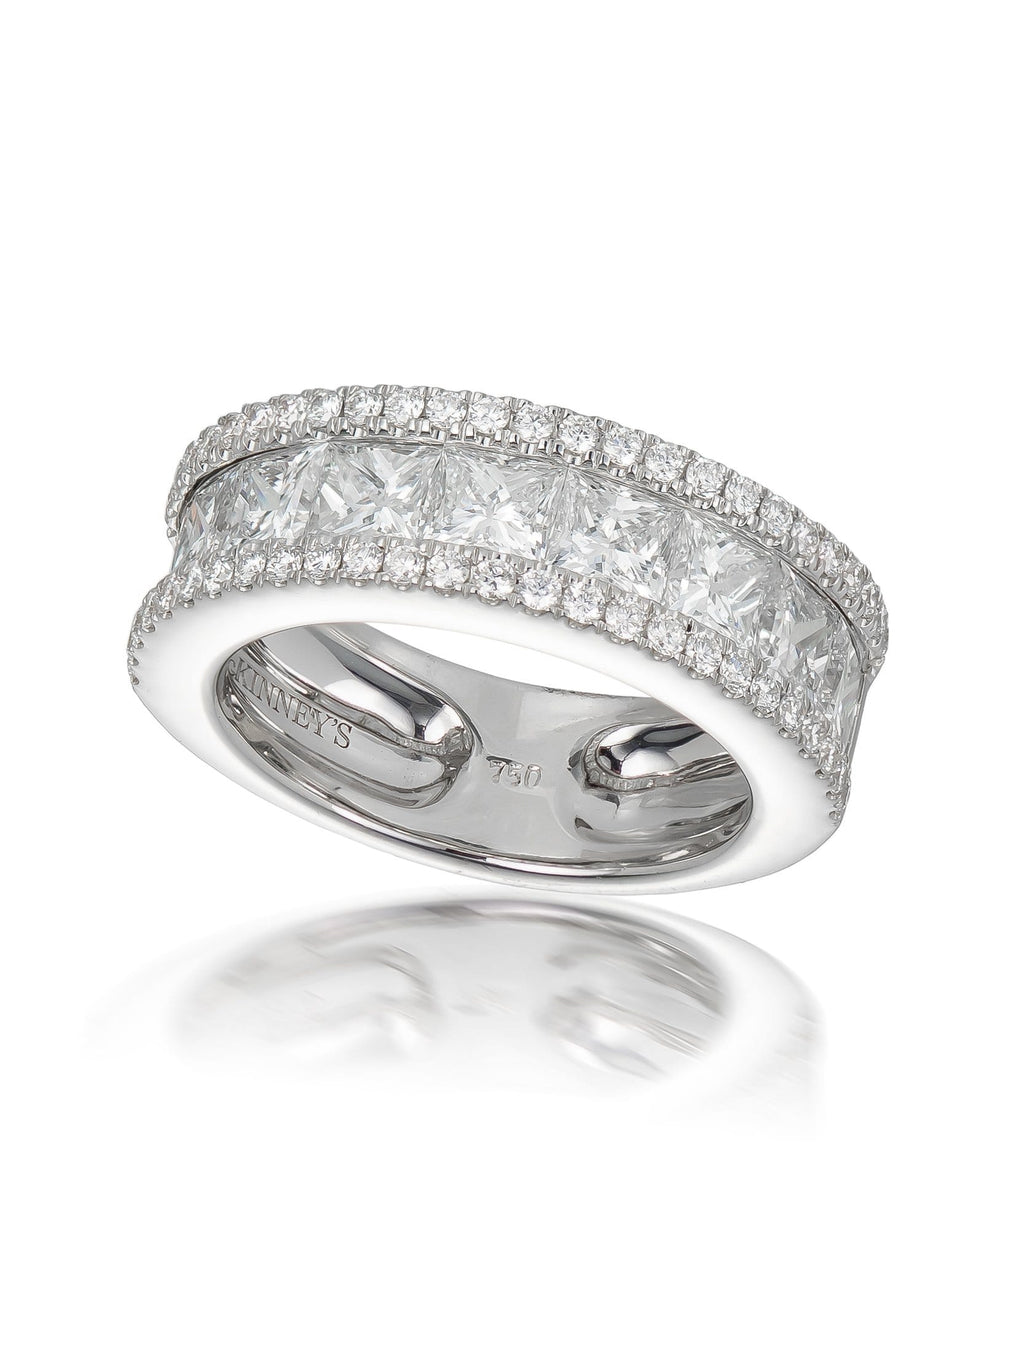 4.12ct Diamond Cocktail Ring